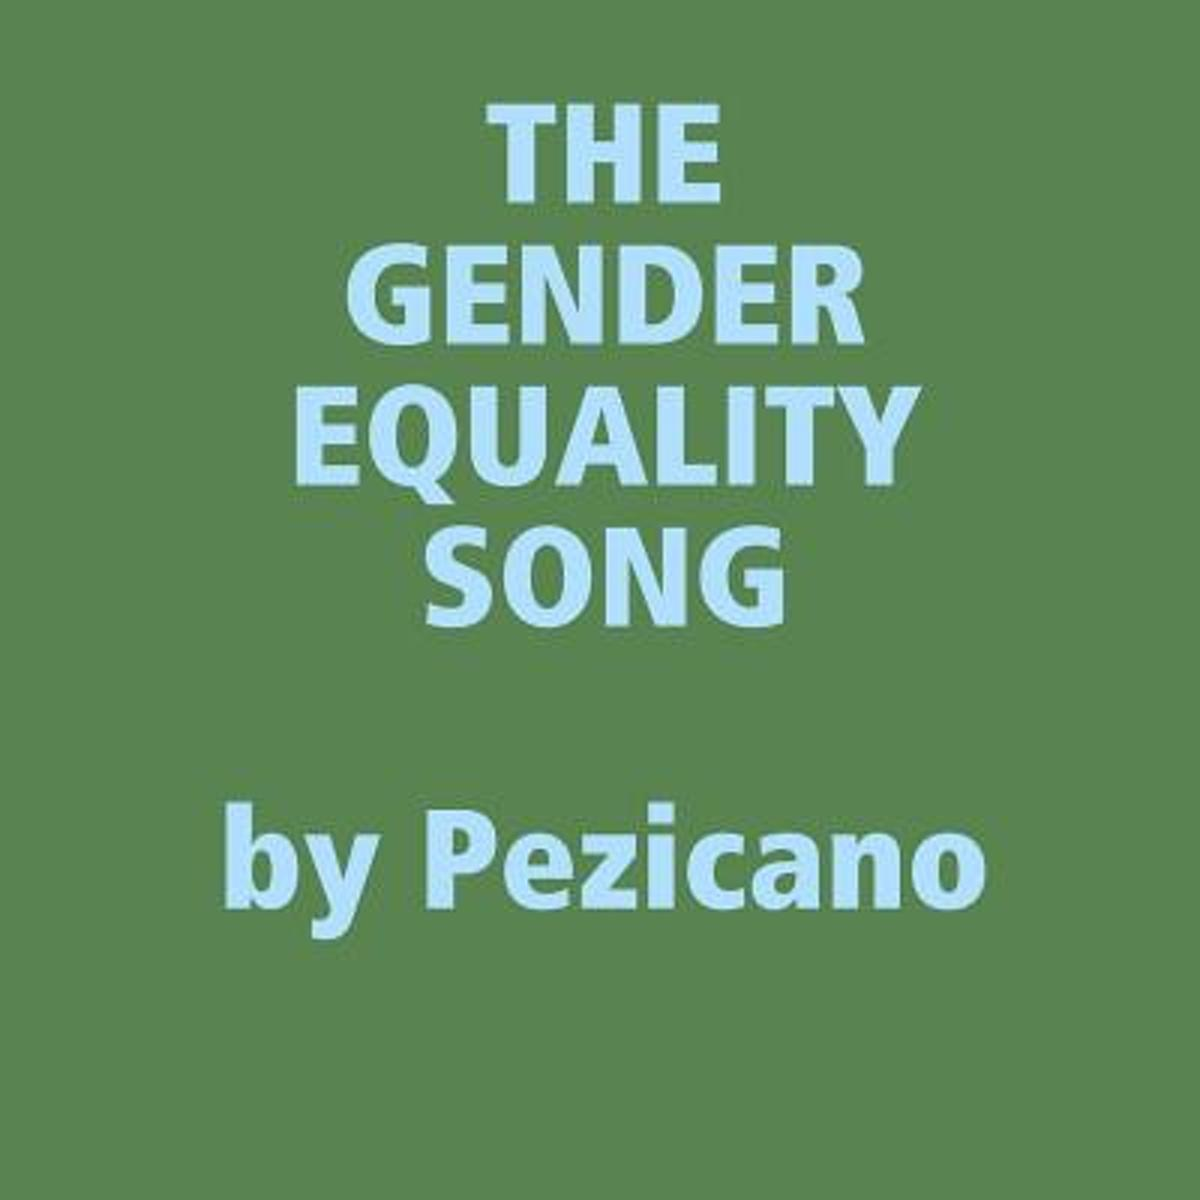 The Gender Equality Song